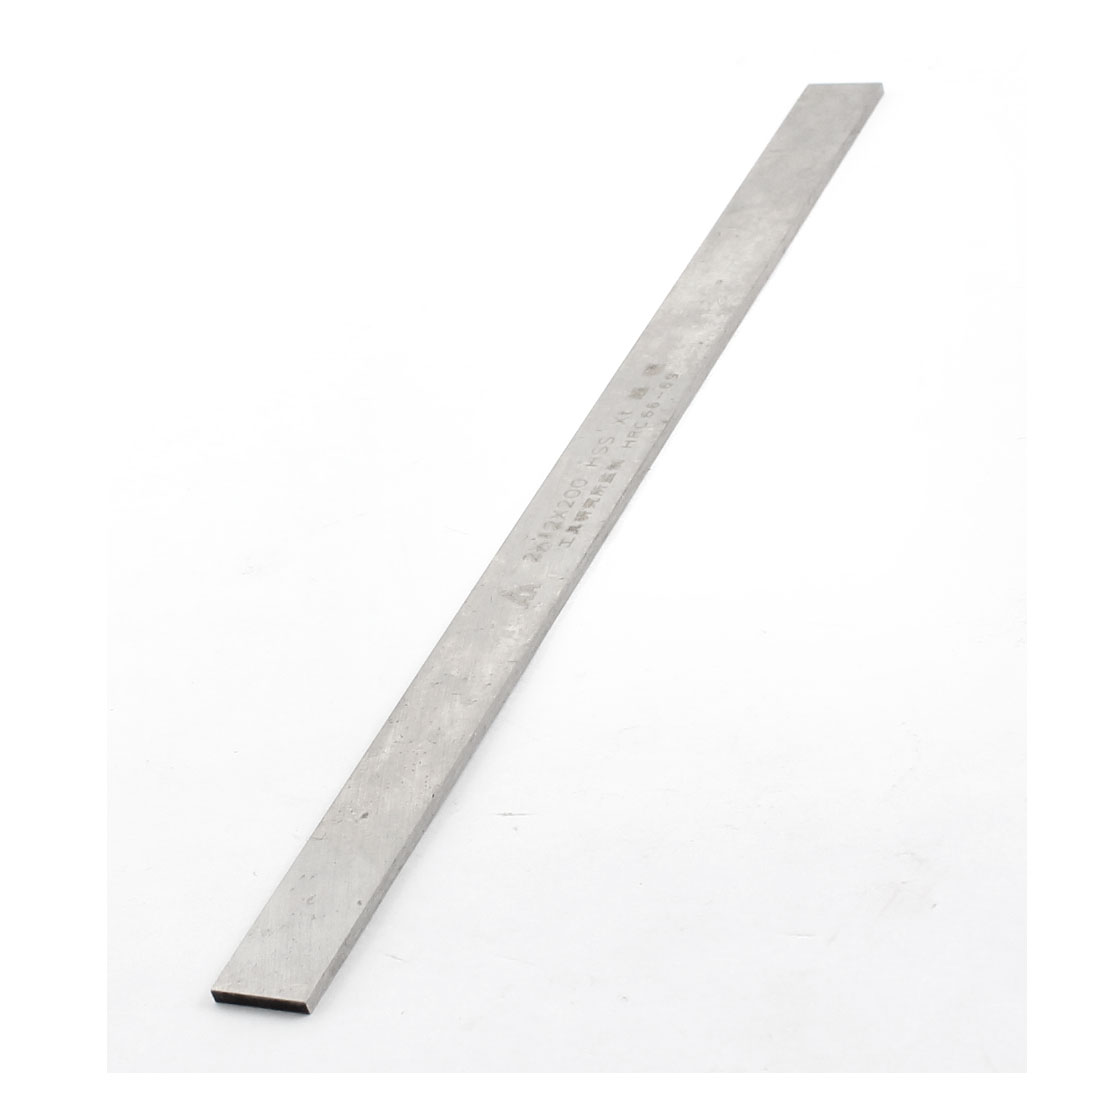 Parallelogram Silver Tone High Speed Steel Parting Turning Milling Lathe HSS Tool Bit 2mm x 12mm x 200mm